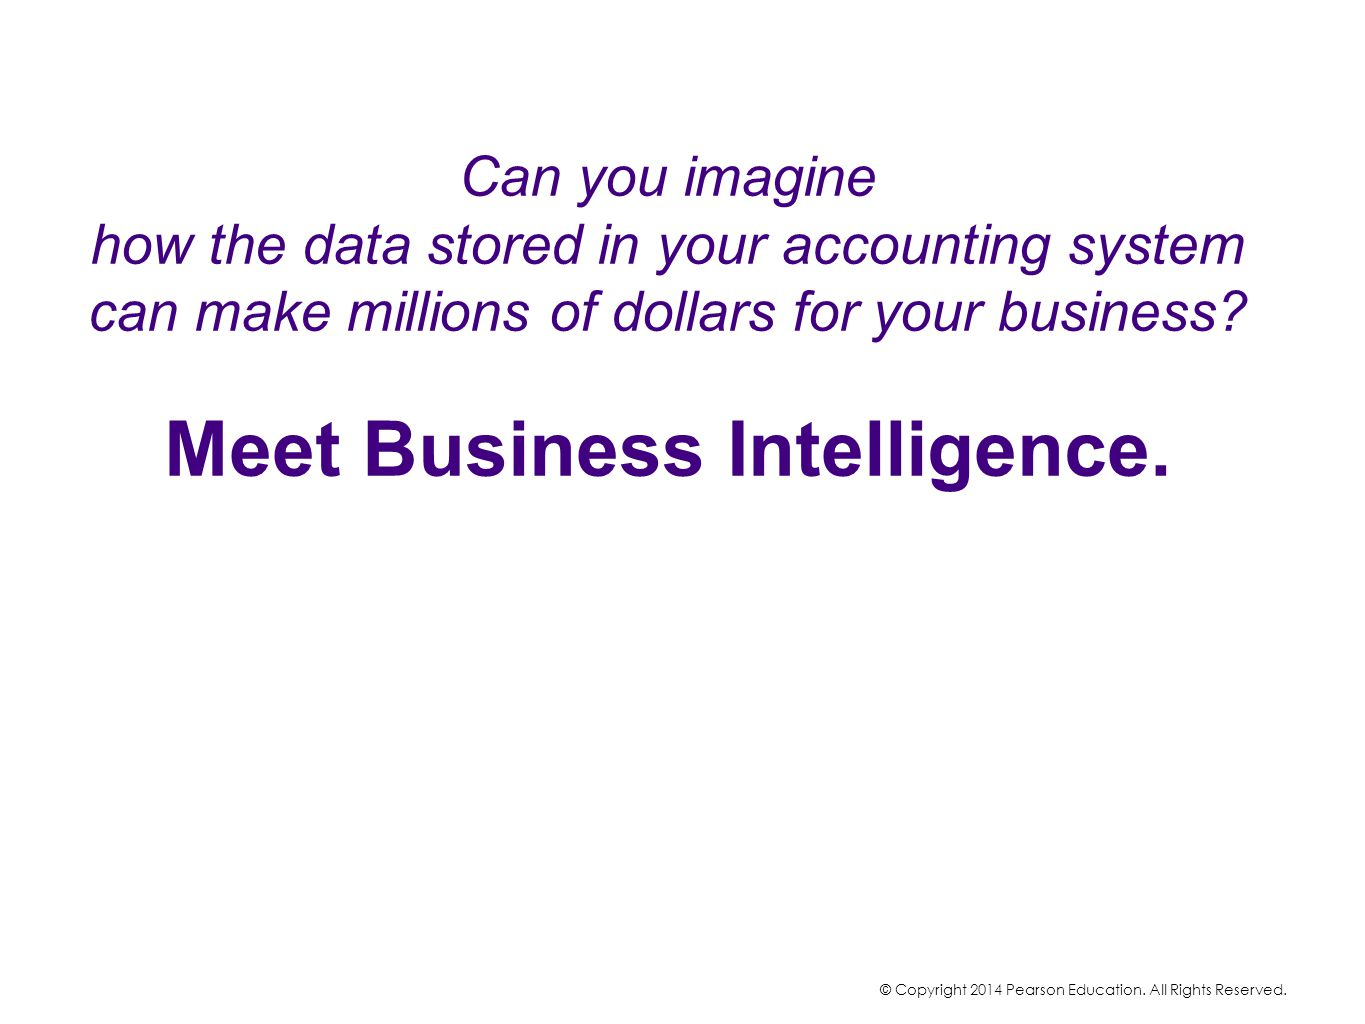 Can you imagine how the data stored in your accounting system can make millions of dollars for your business Meet Business Intelligence.